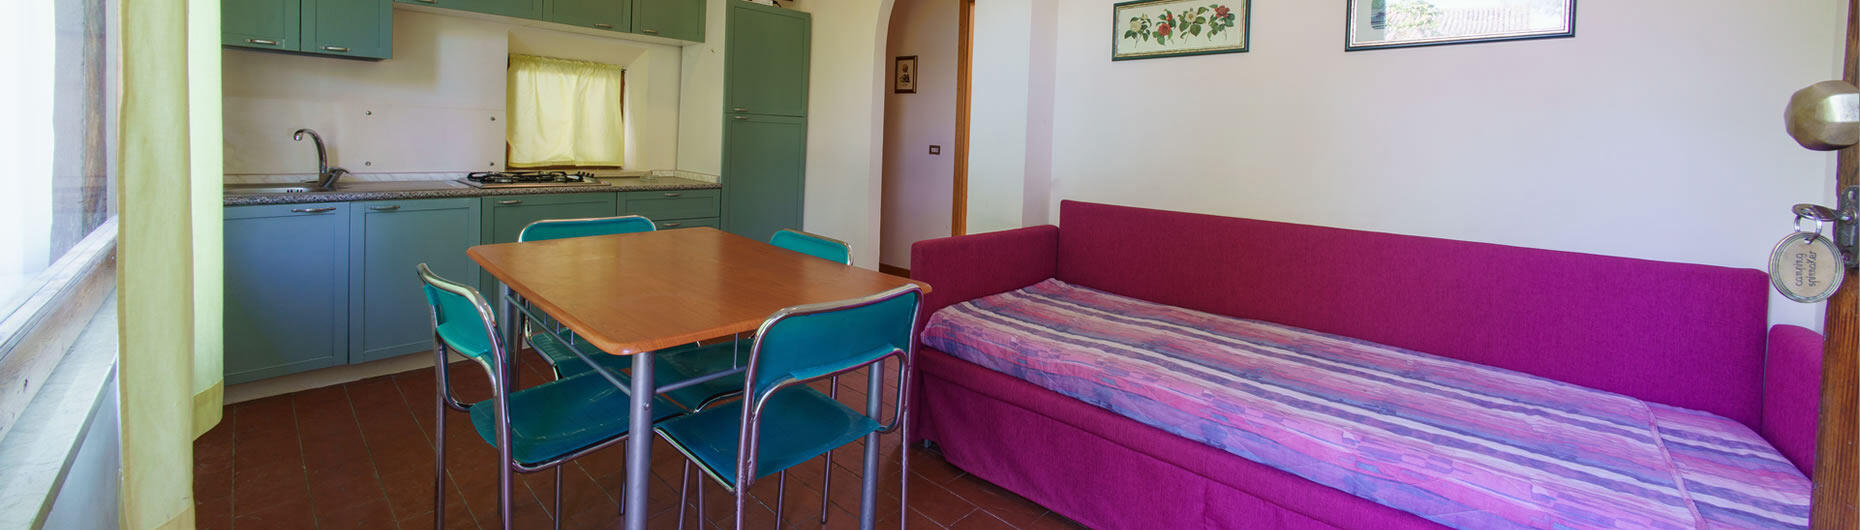 vacanzespinnaker it residence-marche 005